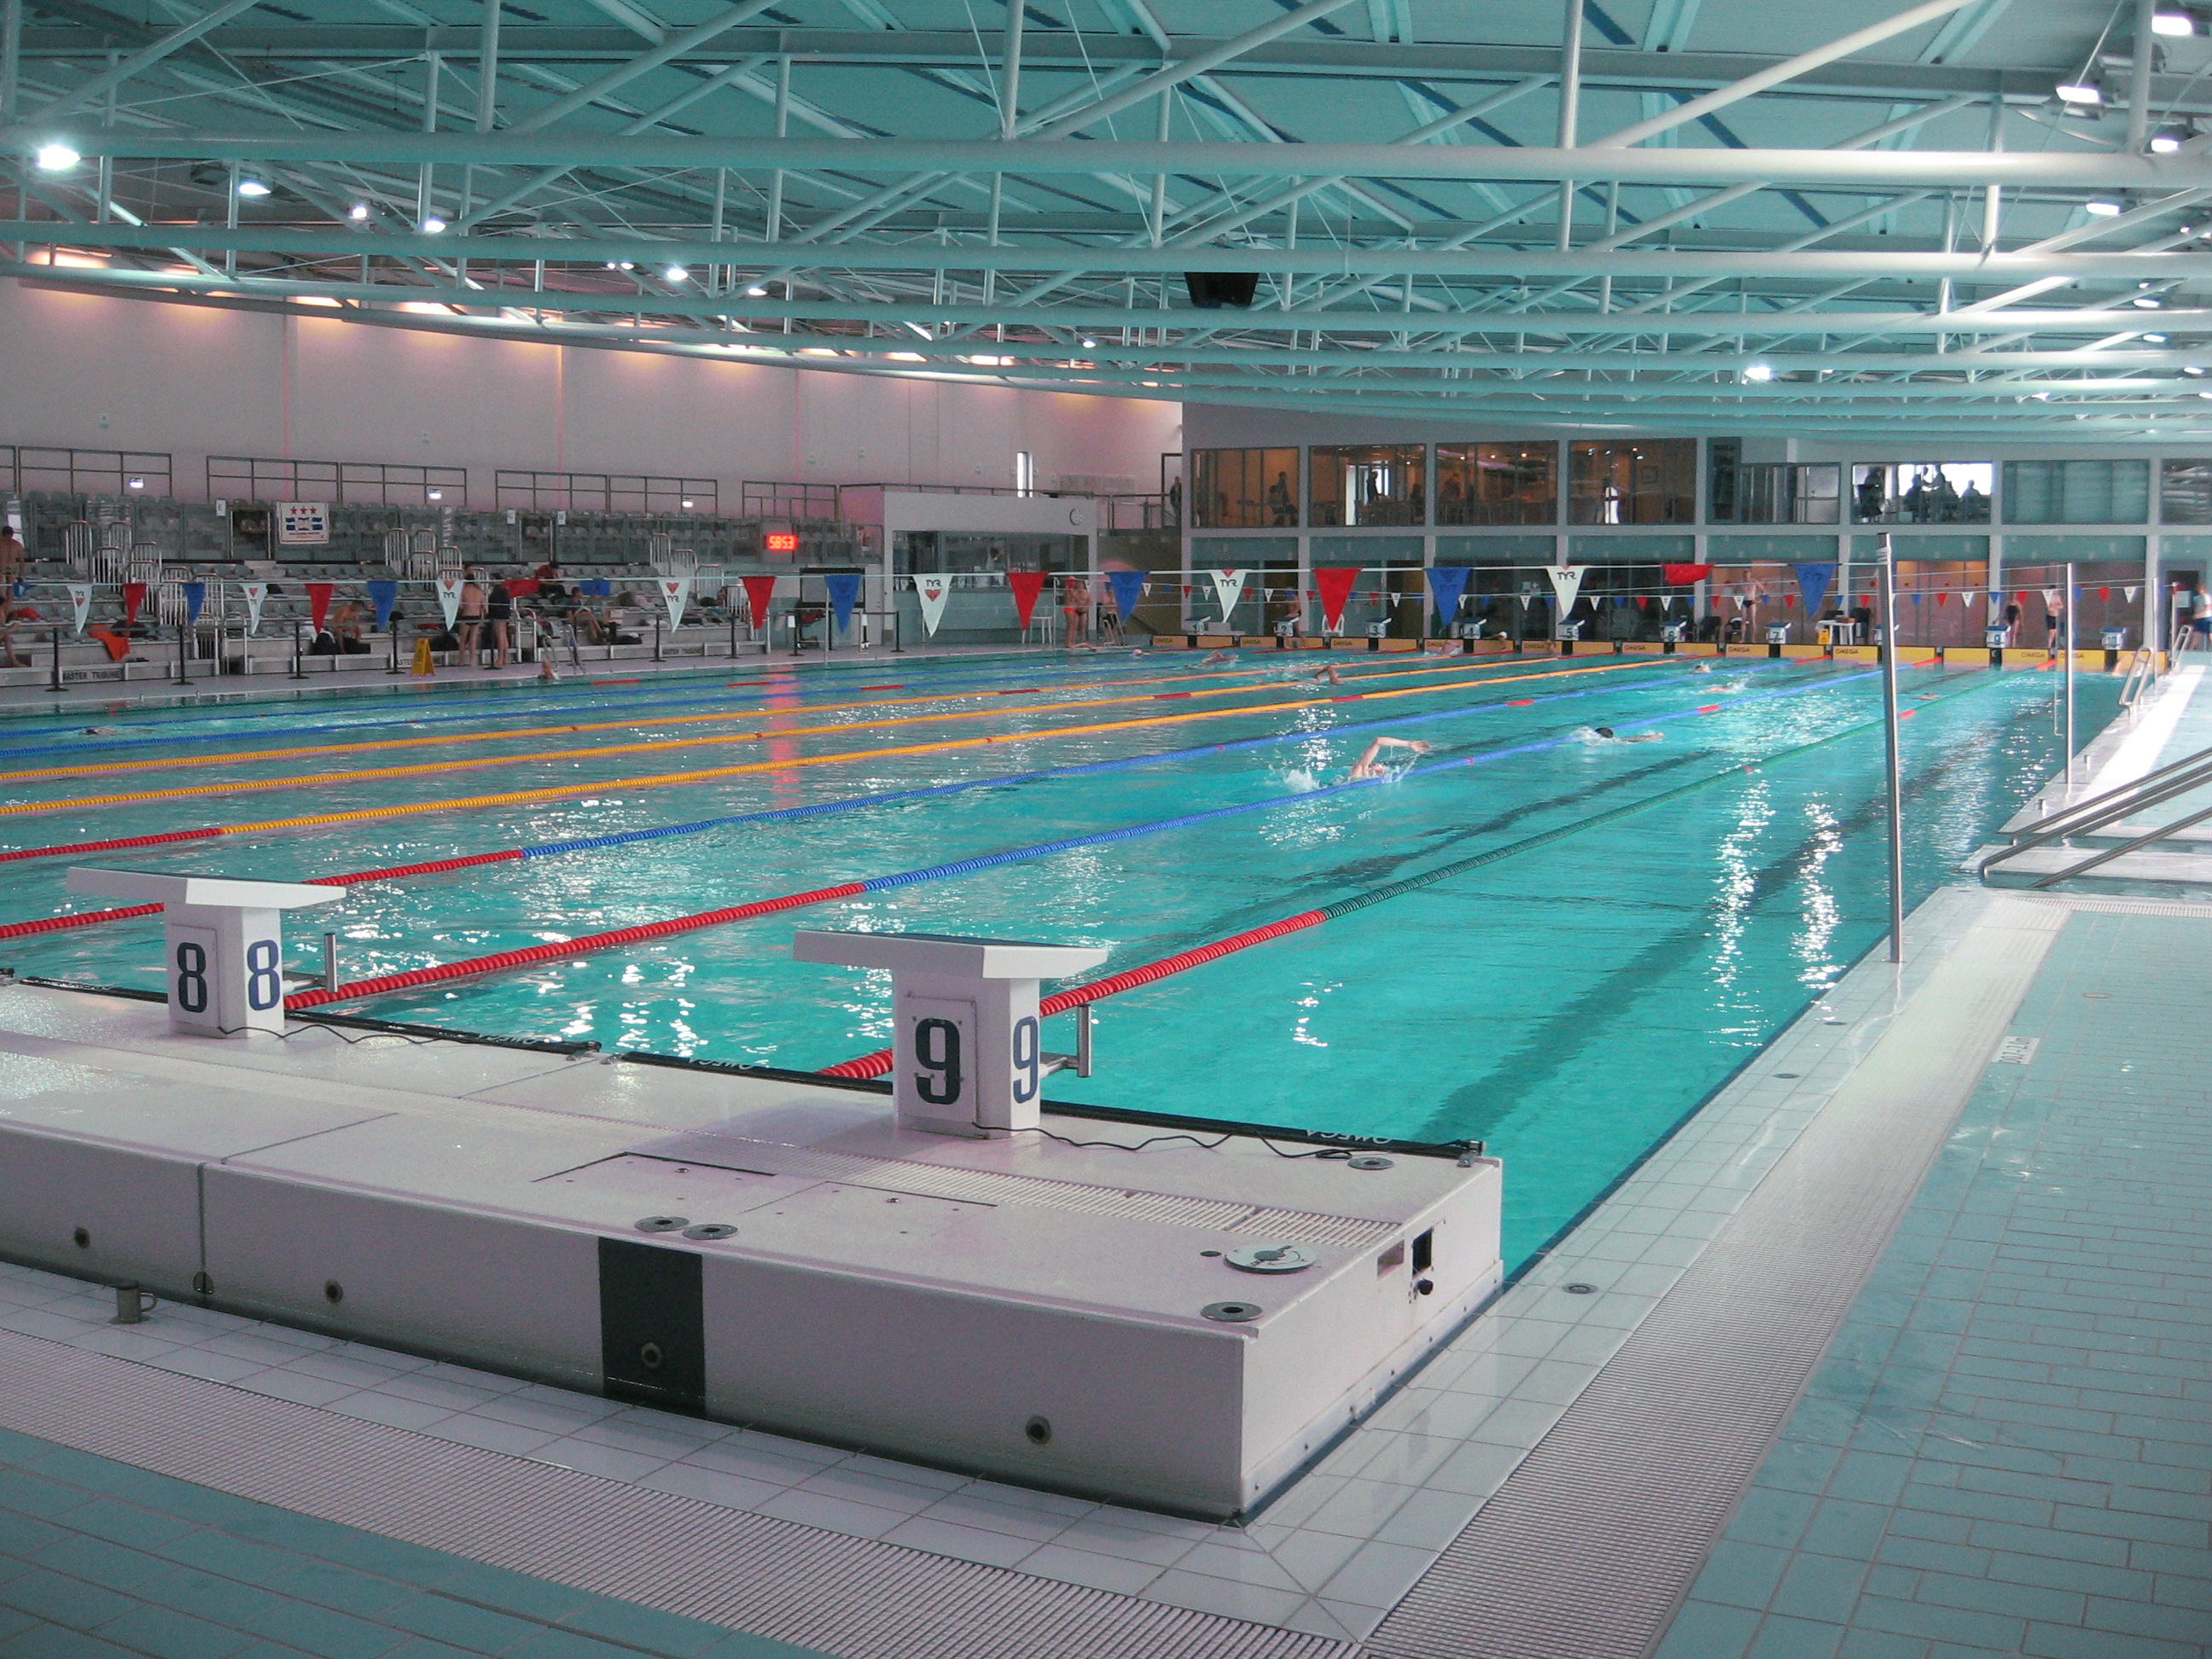 laugardalslaug is a world class competition pool it is the largest pool in iceland and includes an indoor 50m olympic size pool